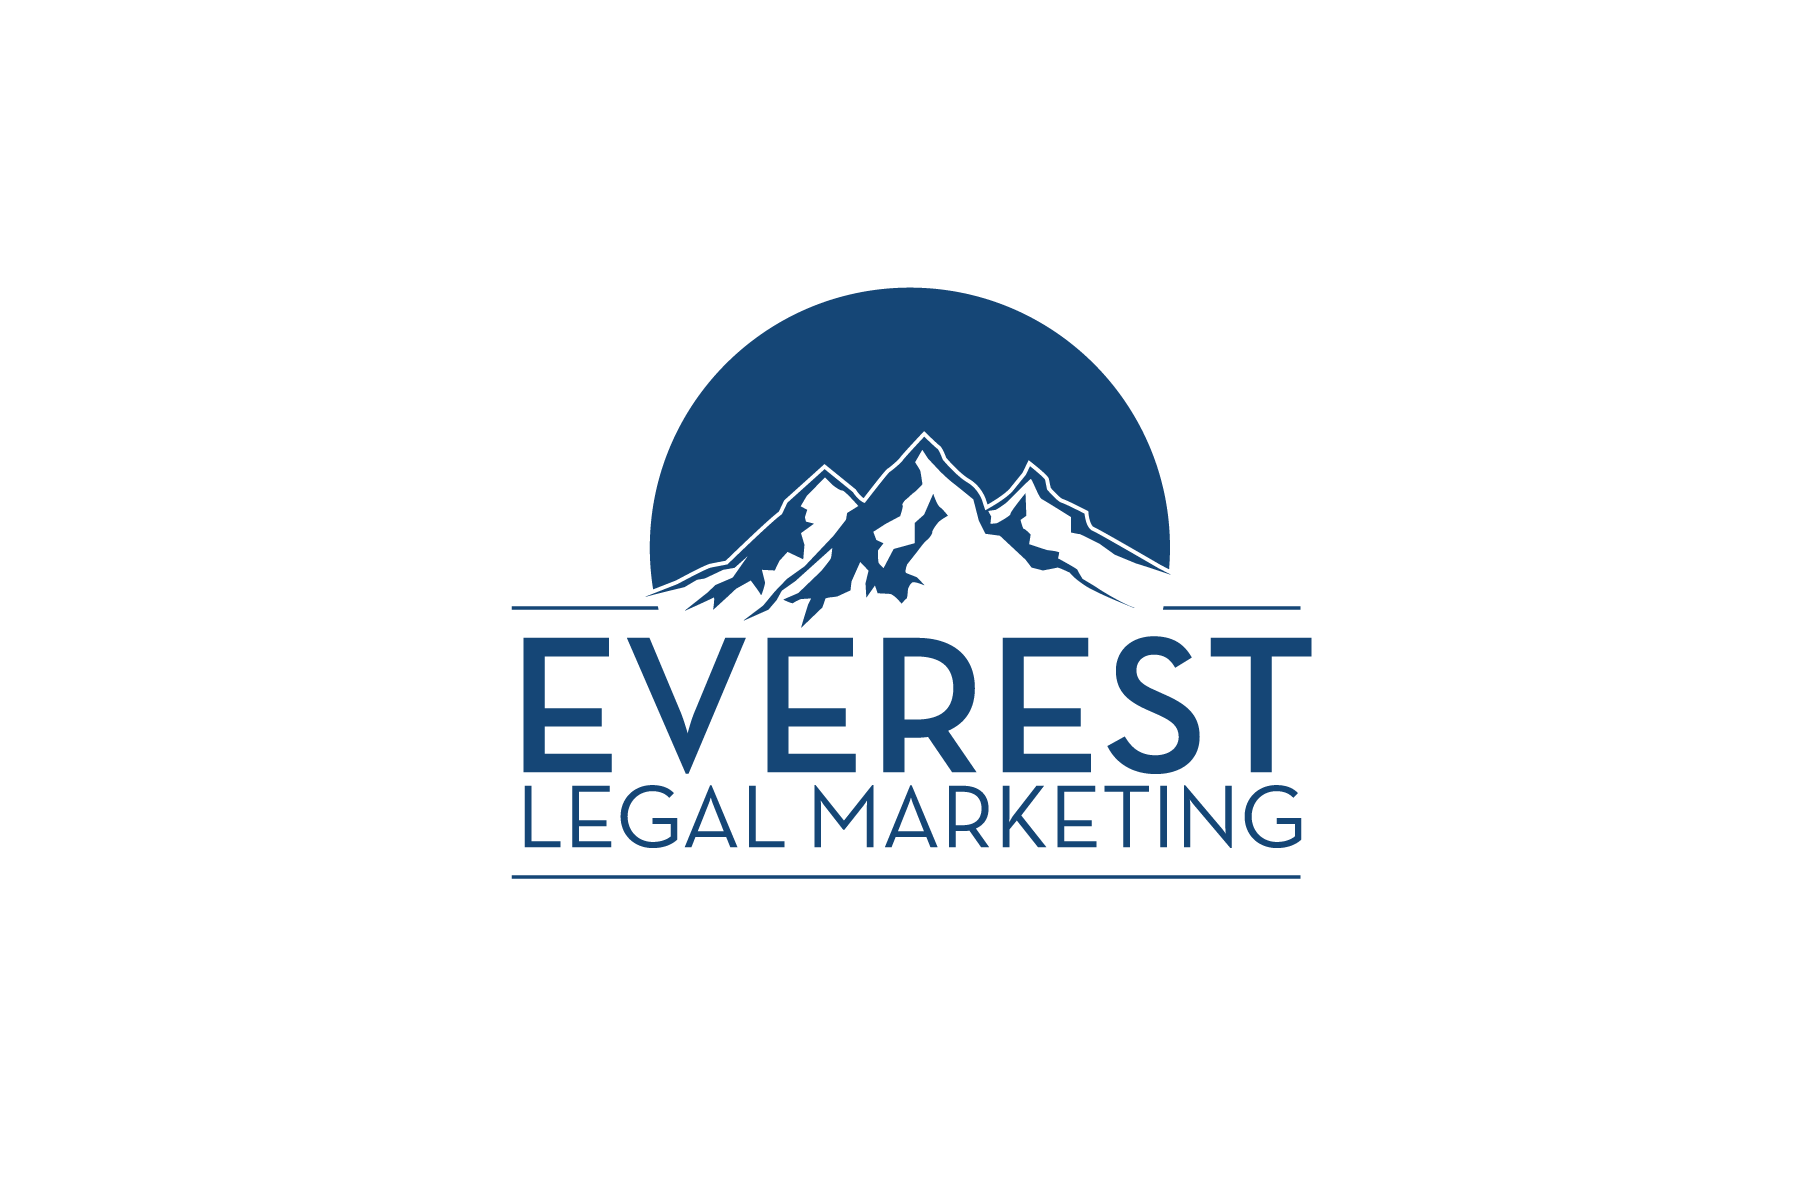 Everest Legal Marketing review